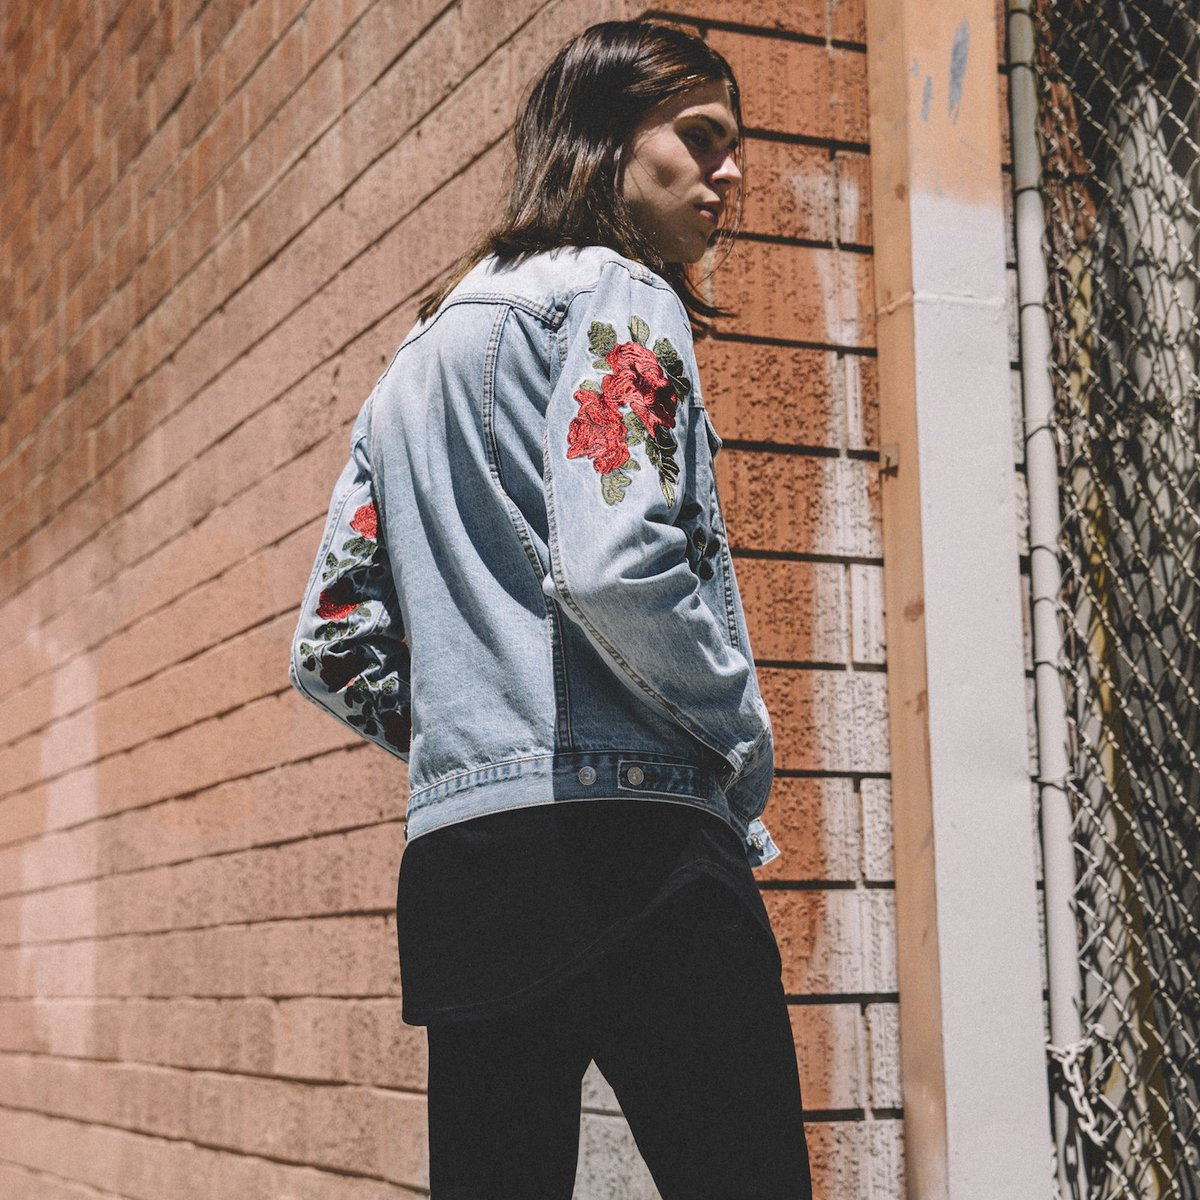 Pacsun On Twitter Not Your Average Denim Jacket Https T Co